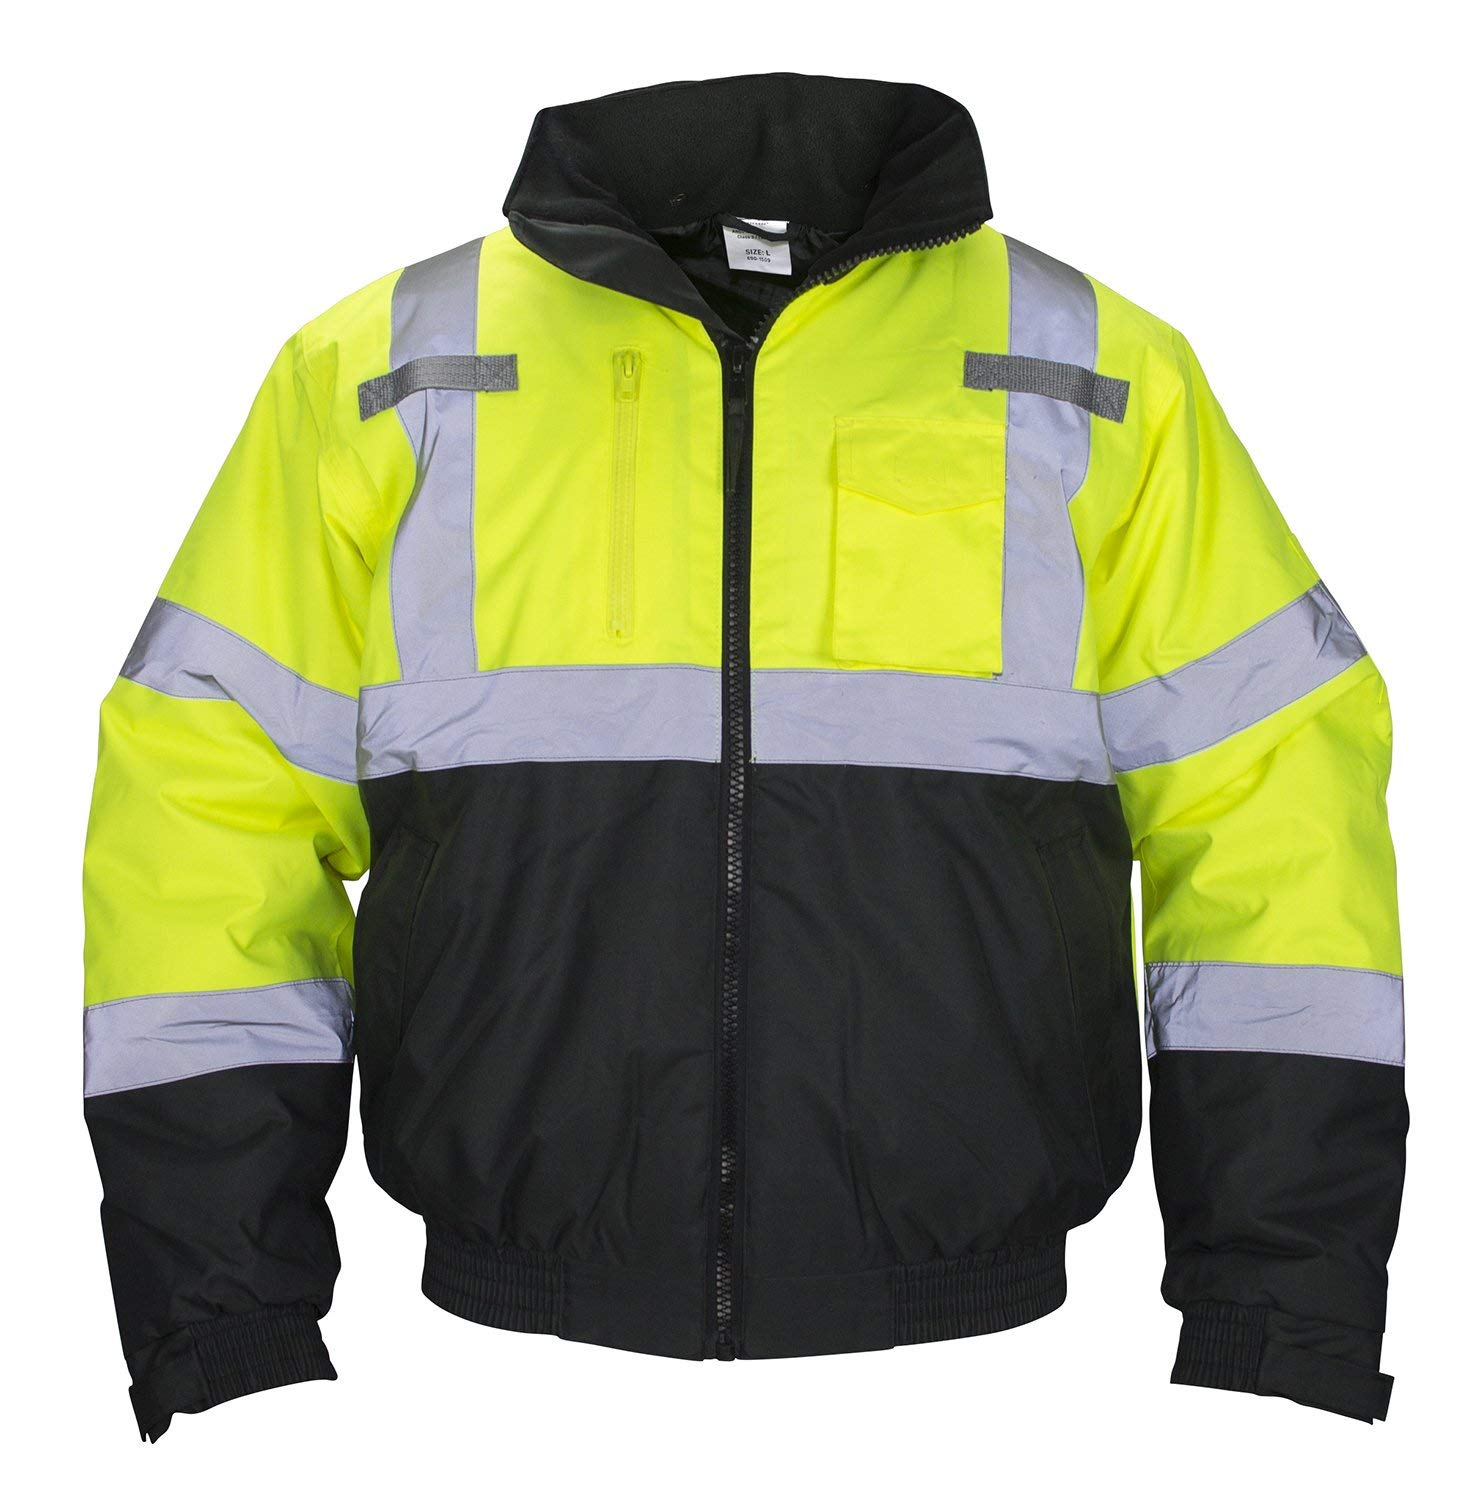 TINGLEY SAFETY BOMBER JACKET, Safety Green